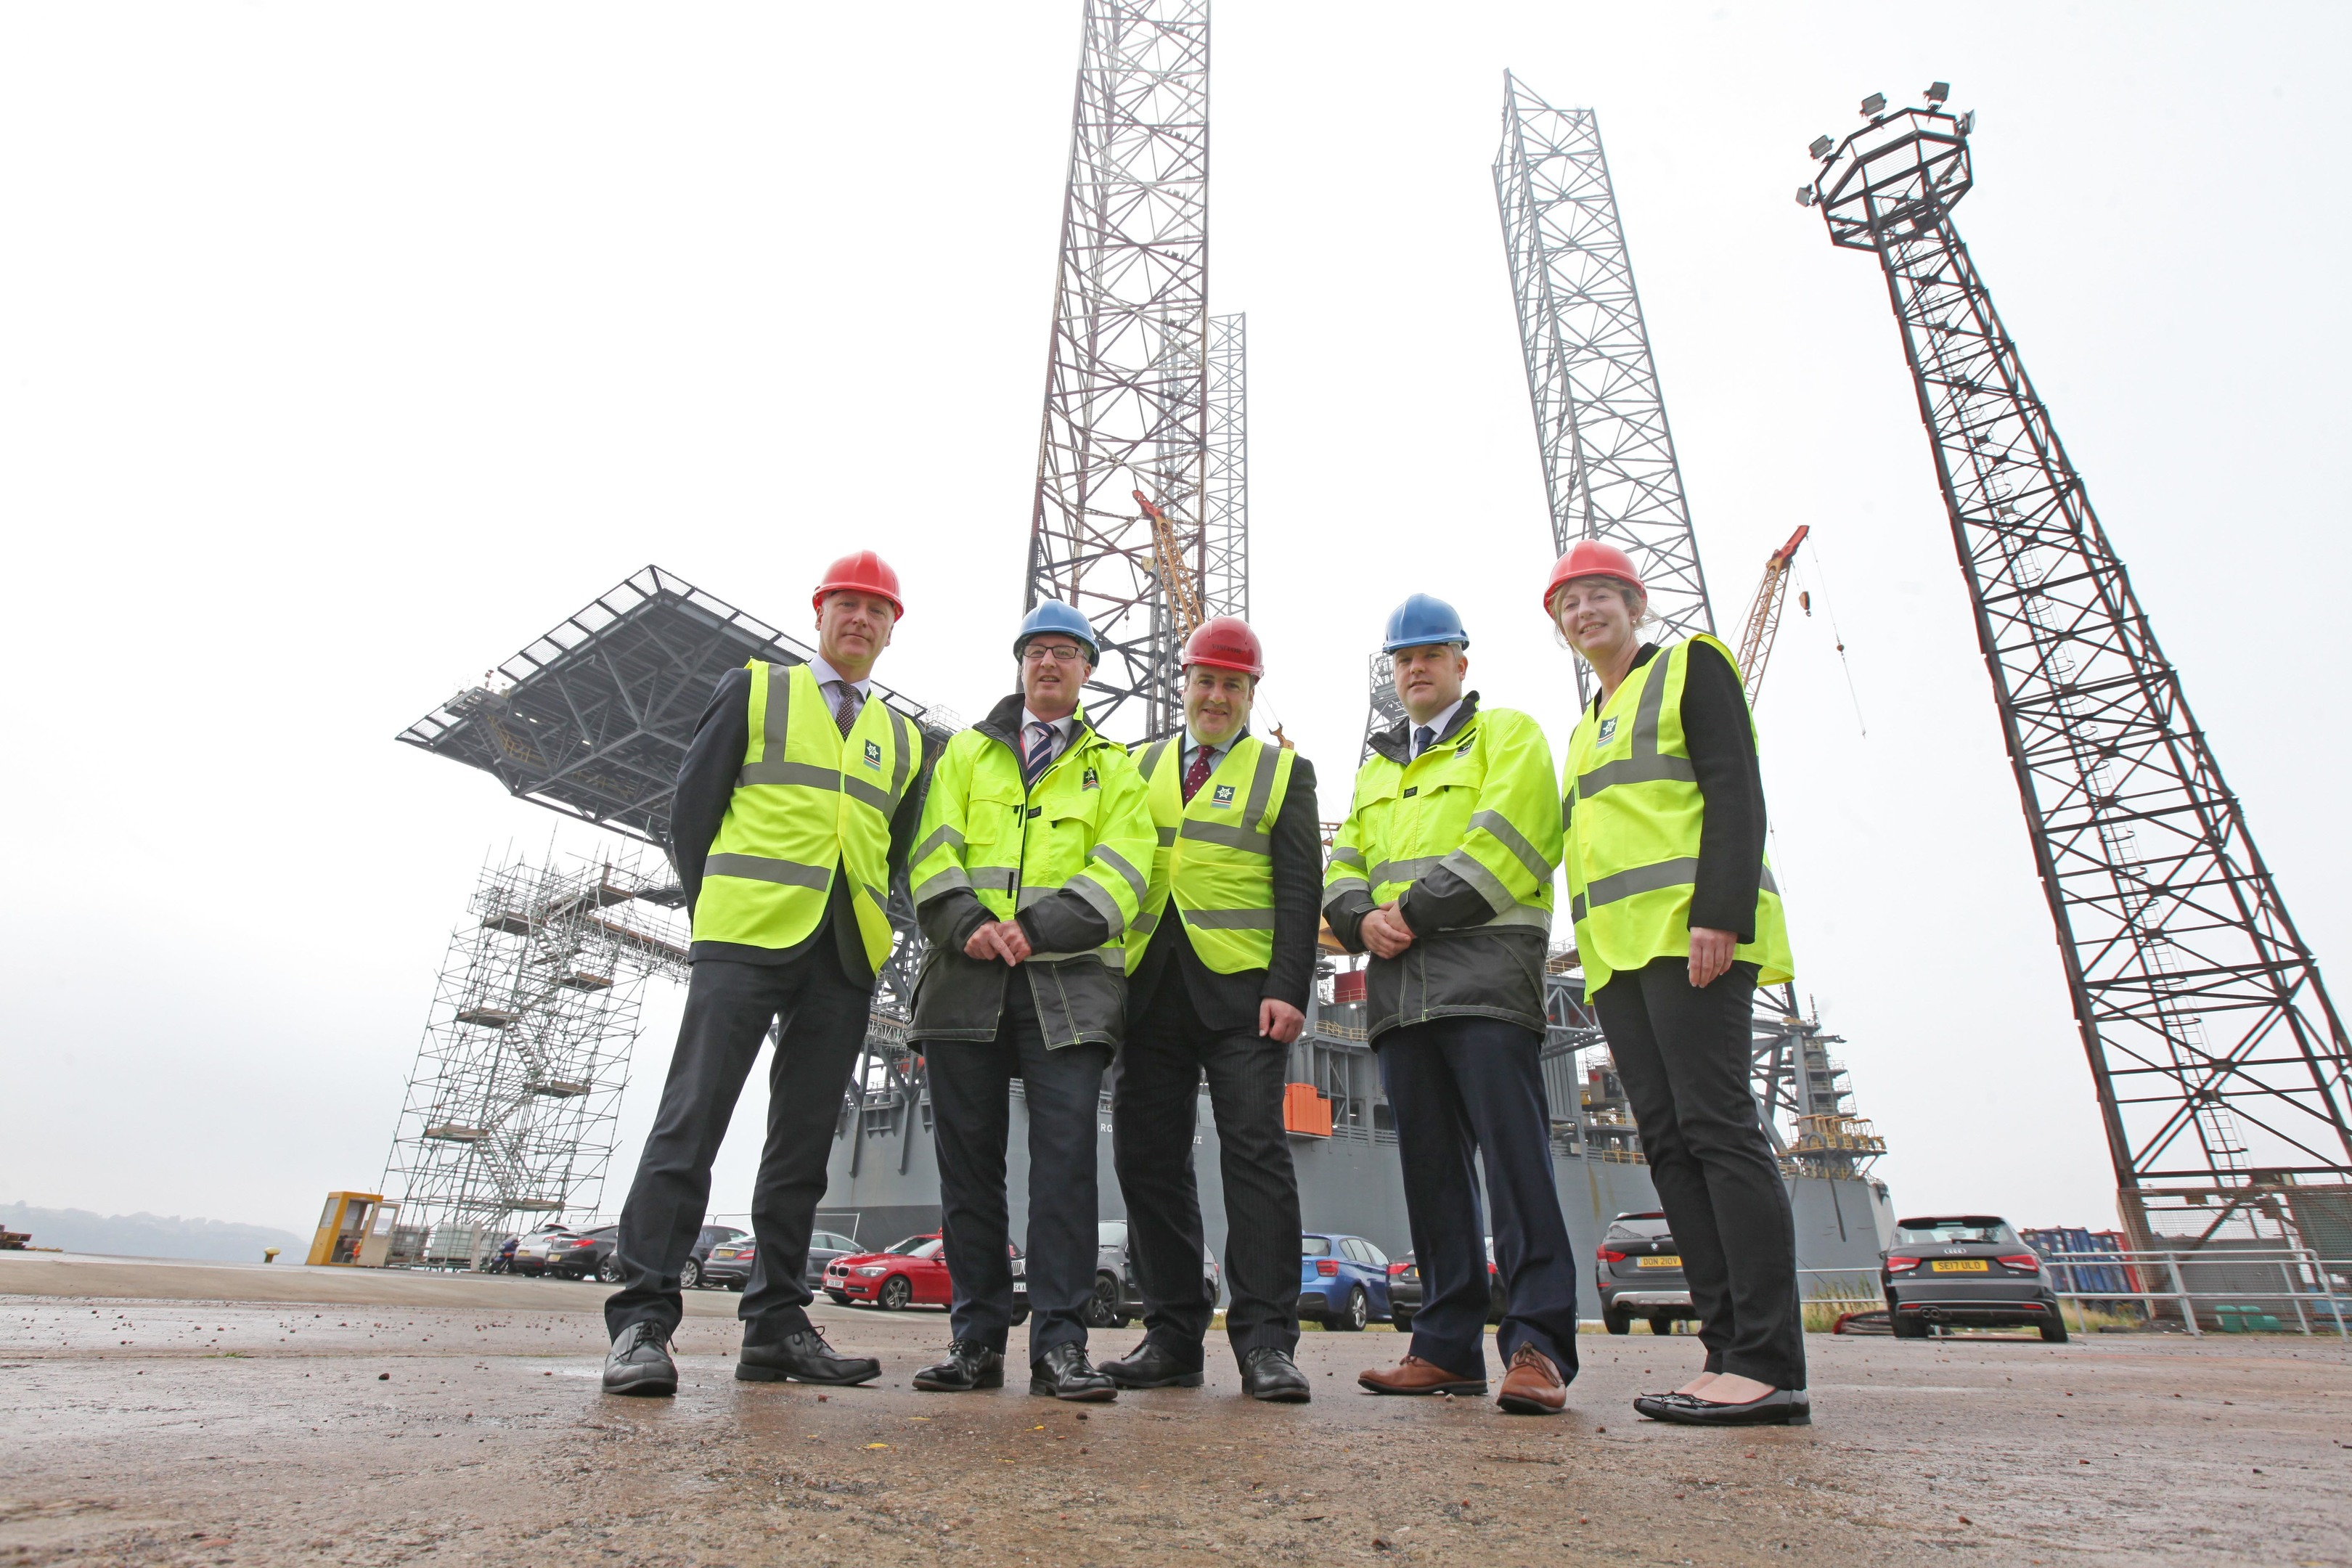 Joe Fitzpatrick MSP; Stuart Wallace, Chief Operating Office of Forth Ports; Paul Wheelhouse MSP – Minister for Business, Innovation and Energy; David Webster, Port Manager of Dundee; Shona Robison MSP.